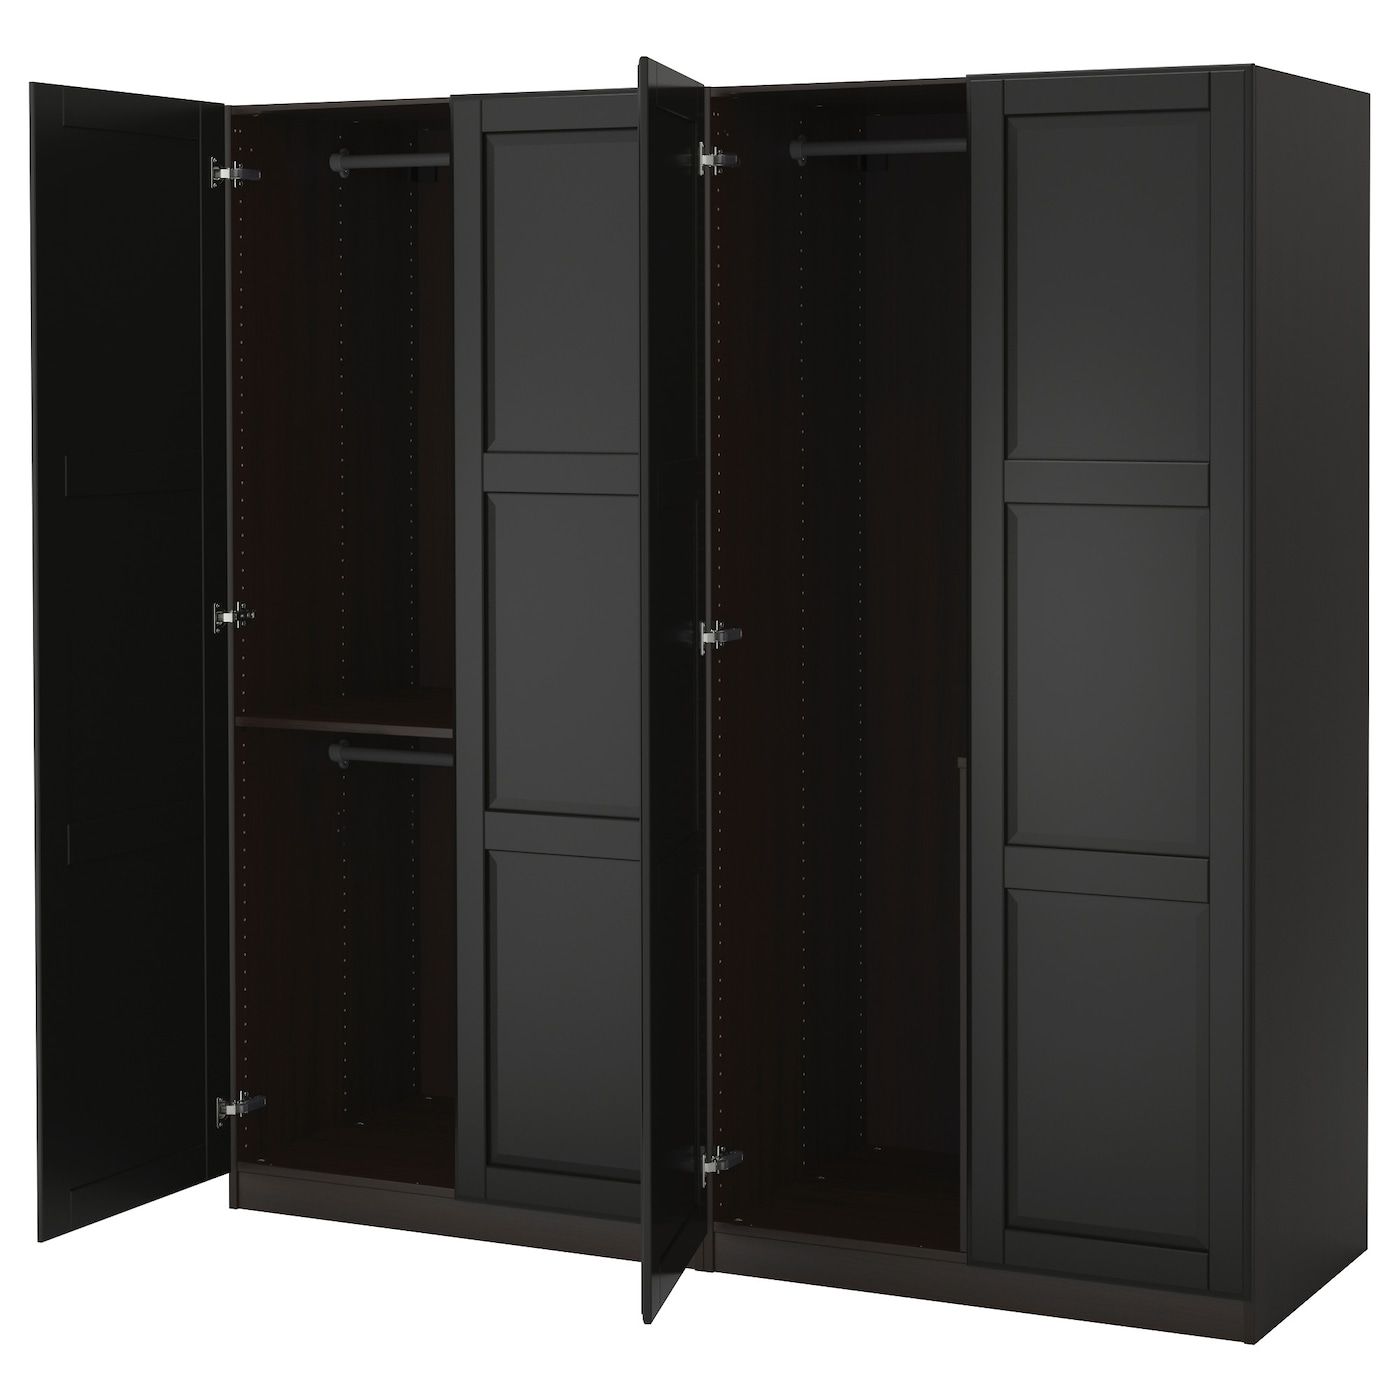 ikea home planer pax interessante ideen f r die gestaltung eines raumes in ihrem. Black Bedroom Furniture Sets. Home Design Ideas